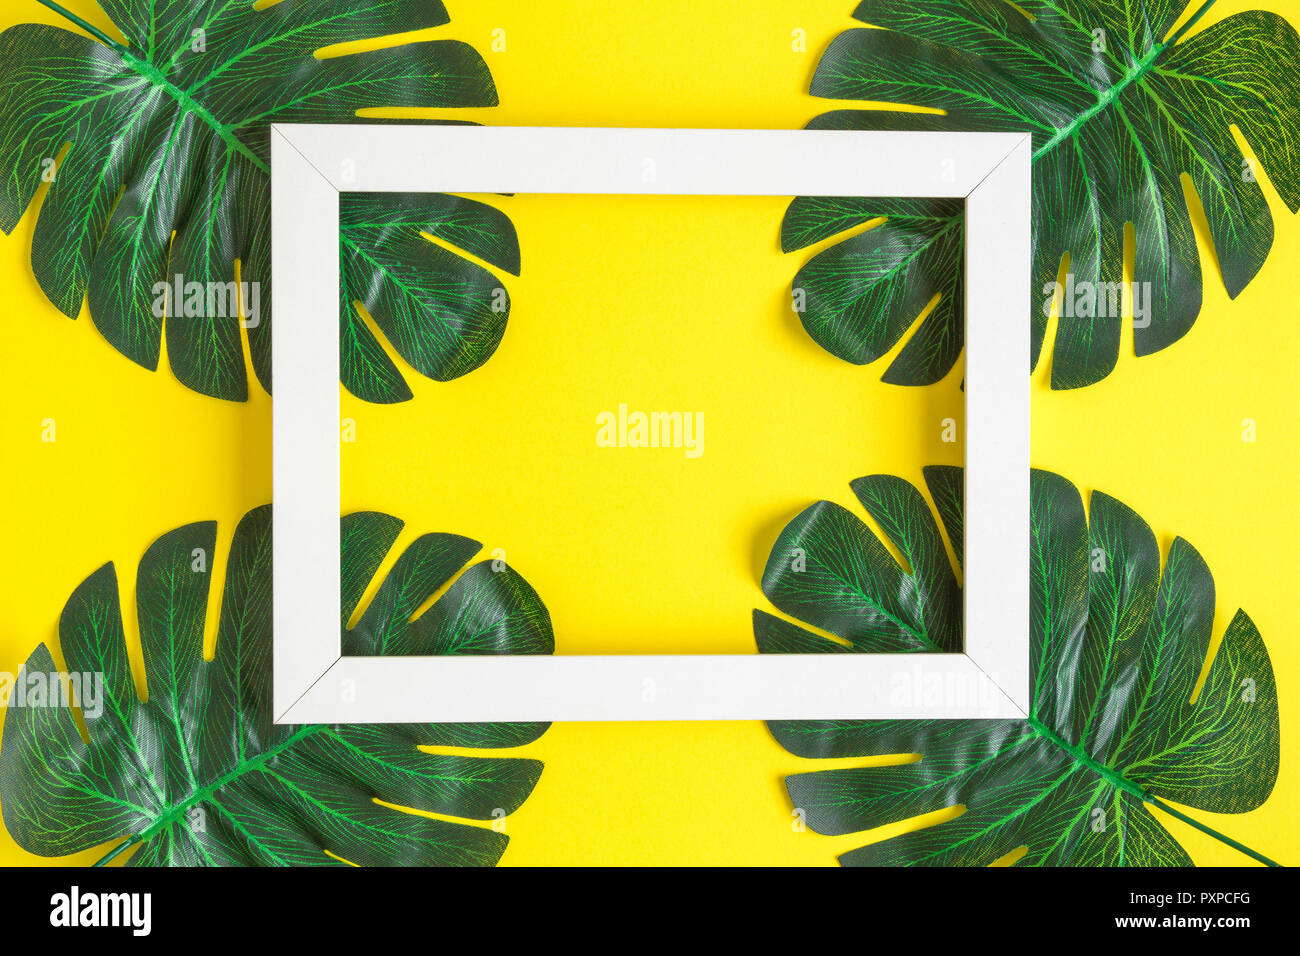 White Photo Frame With Tropical Palm Leaves Arrangement On Yellow Background Minimal Summer Concept Stock Photo Alamy Download the perfect tropical leaves pictures. https www alamy com white photo frame with tropical palm leaves arrangement on yellow background minimal summer concept image222998260 html